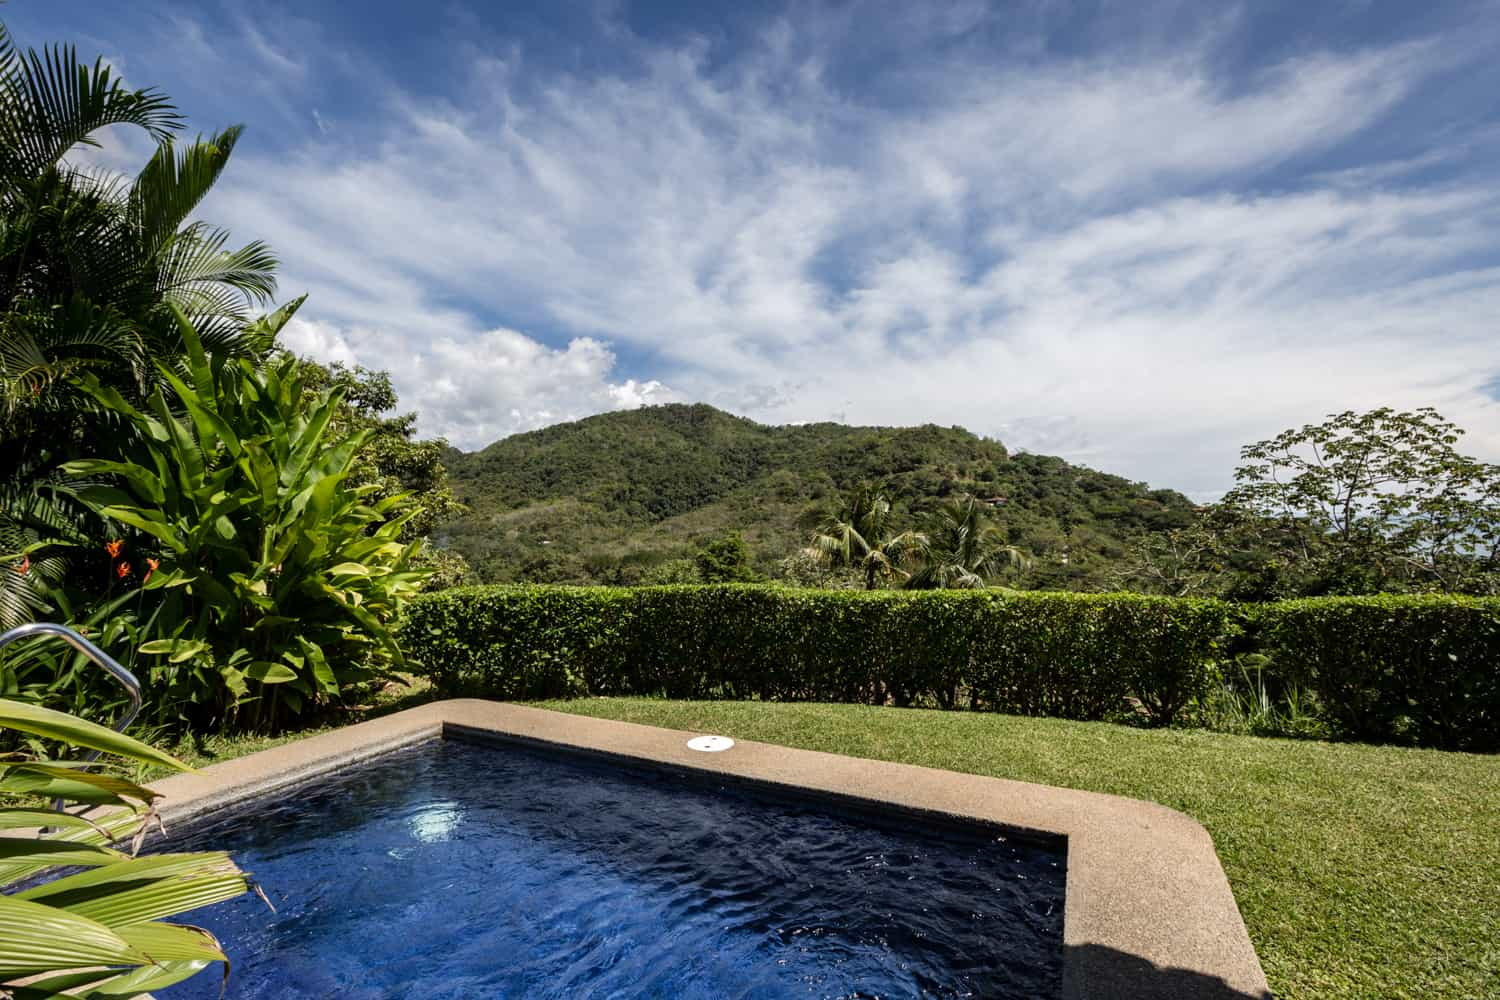 Rainforest-covered mountain in background of private pool.